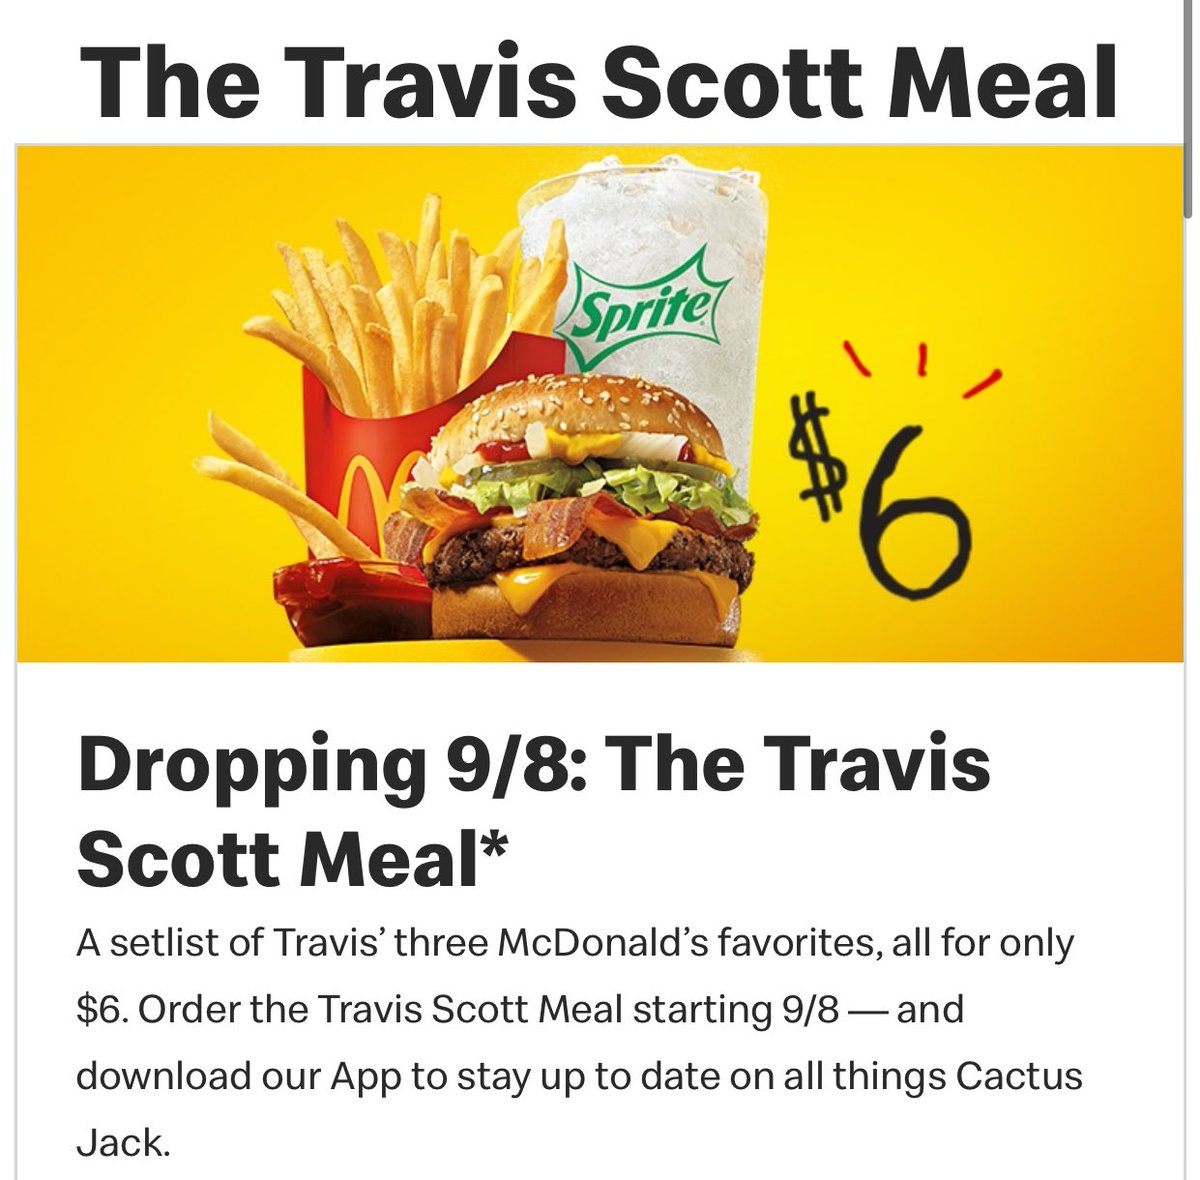 WAIT THE TRAVIS SCOTT MEAL IS REAL I THOUGHT IT WAS A JOKE https://t.co/ytFFCflKDB